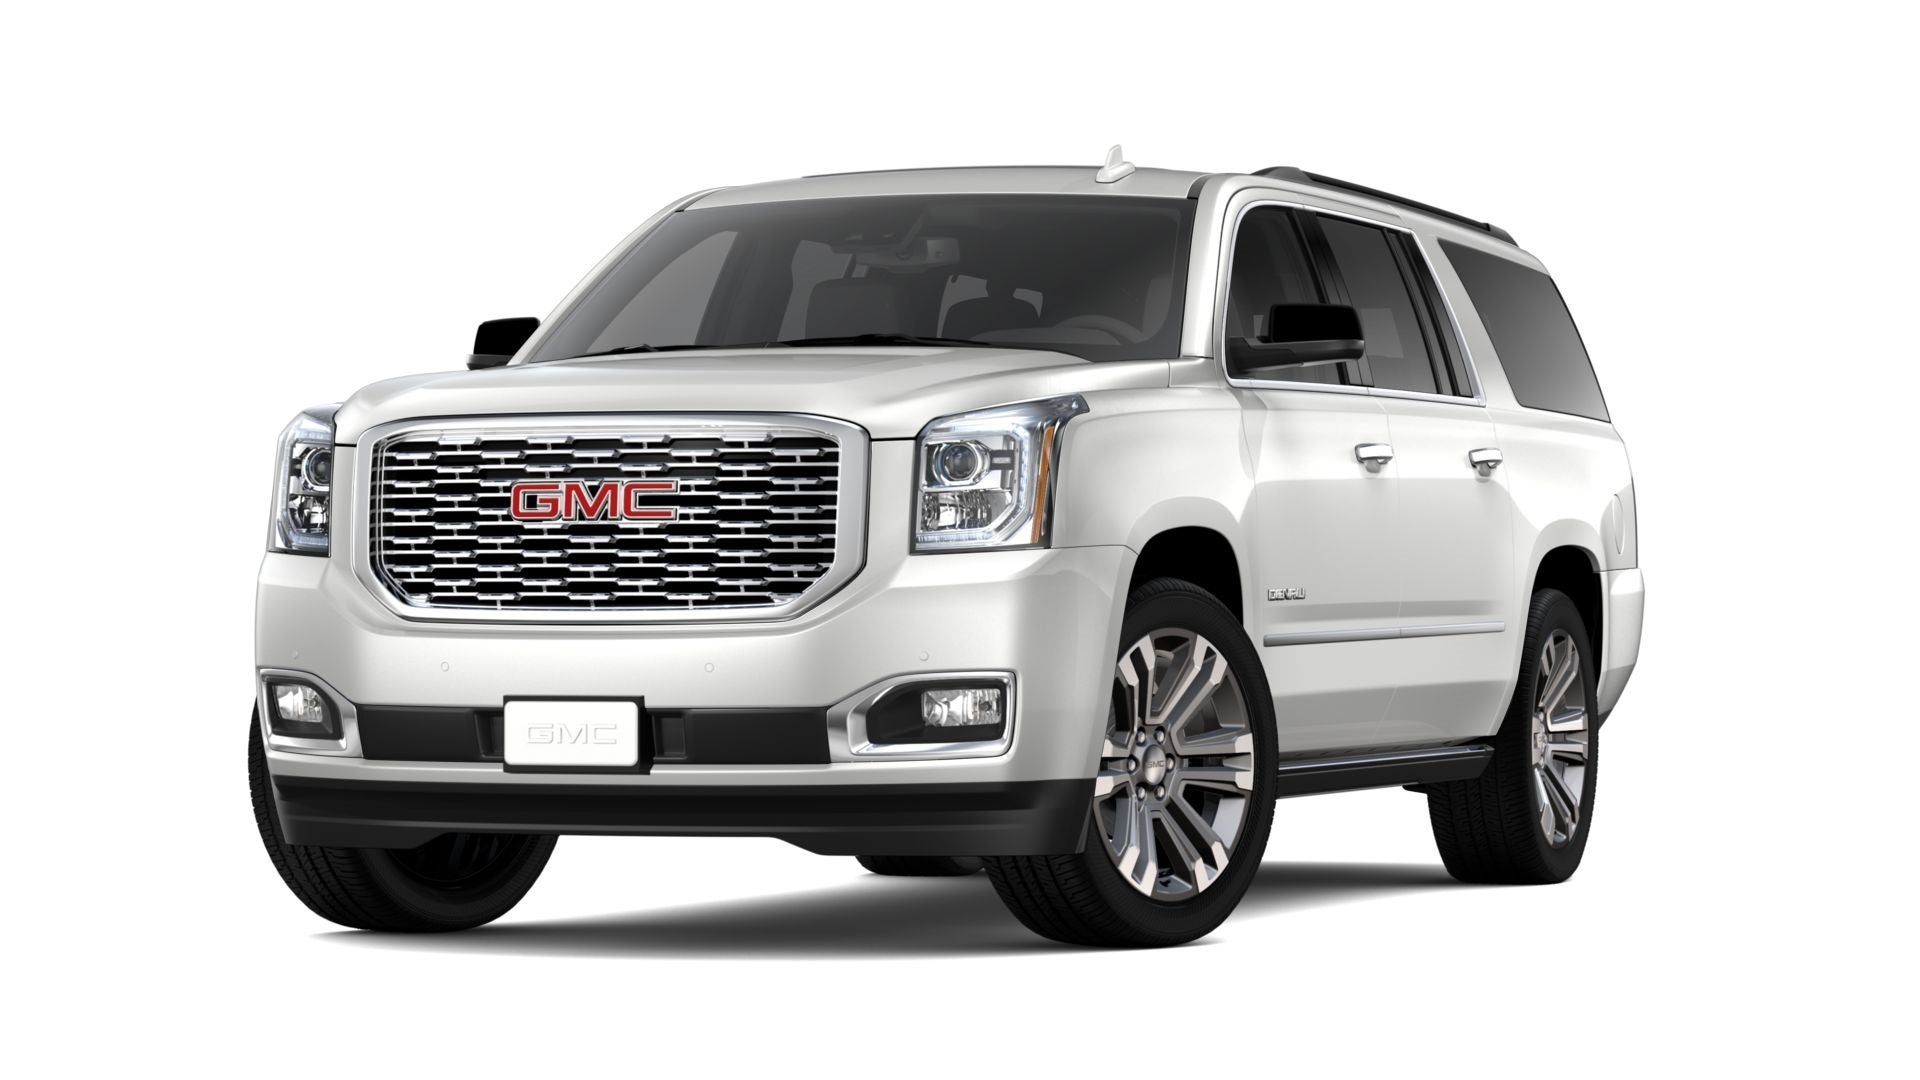 2020 Gmc Yukon Xl Denali Rapid City Sd Spearfish Strugis Ellsworth Airforce Base South Dakota 1gks2hkj4lr110075